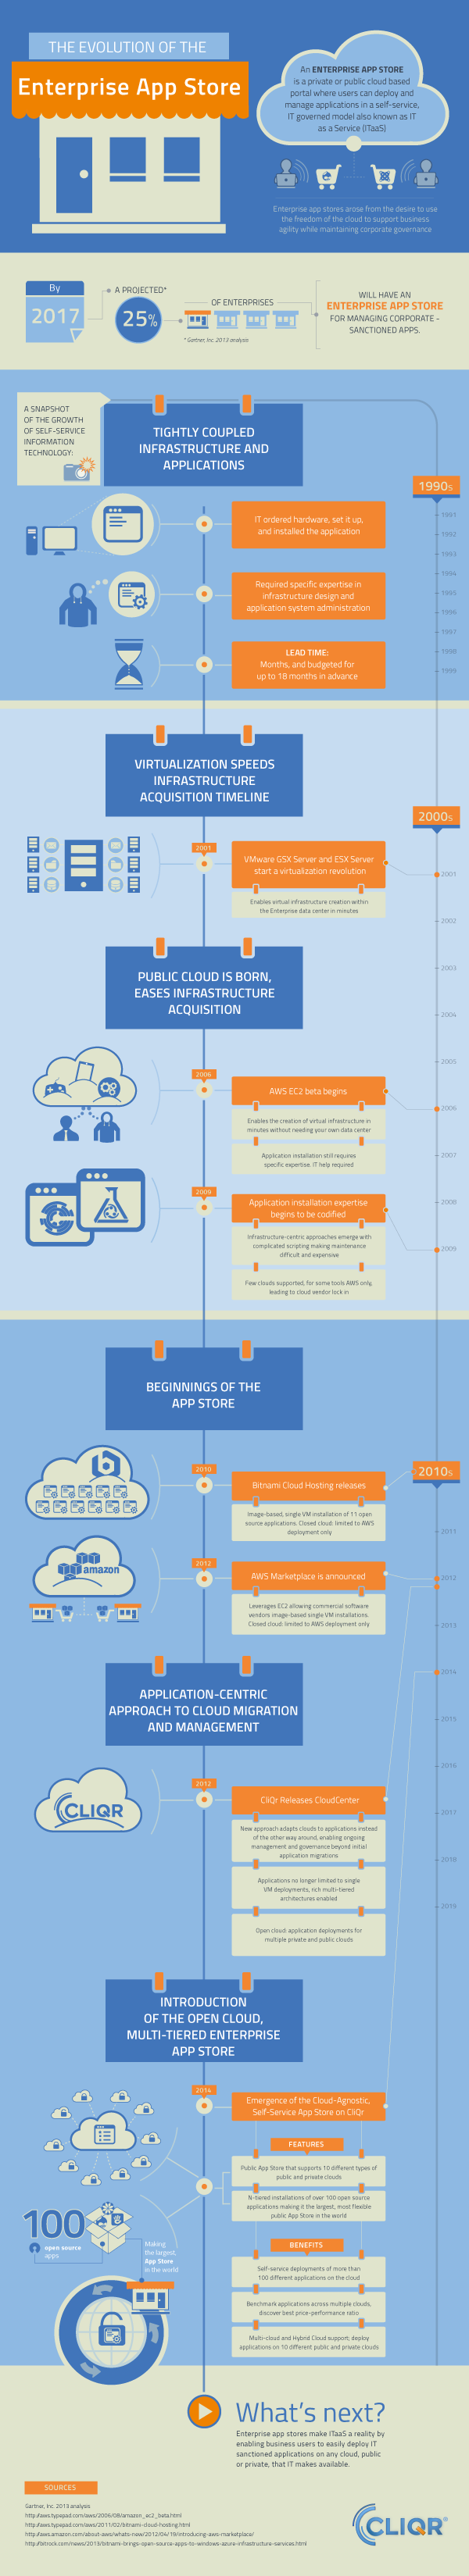 INFOGRAPHIC: Evolution of the Enterprise App Store